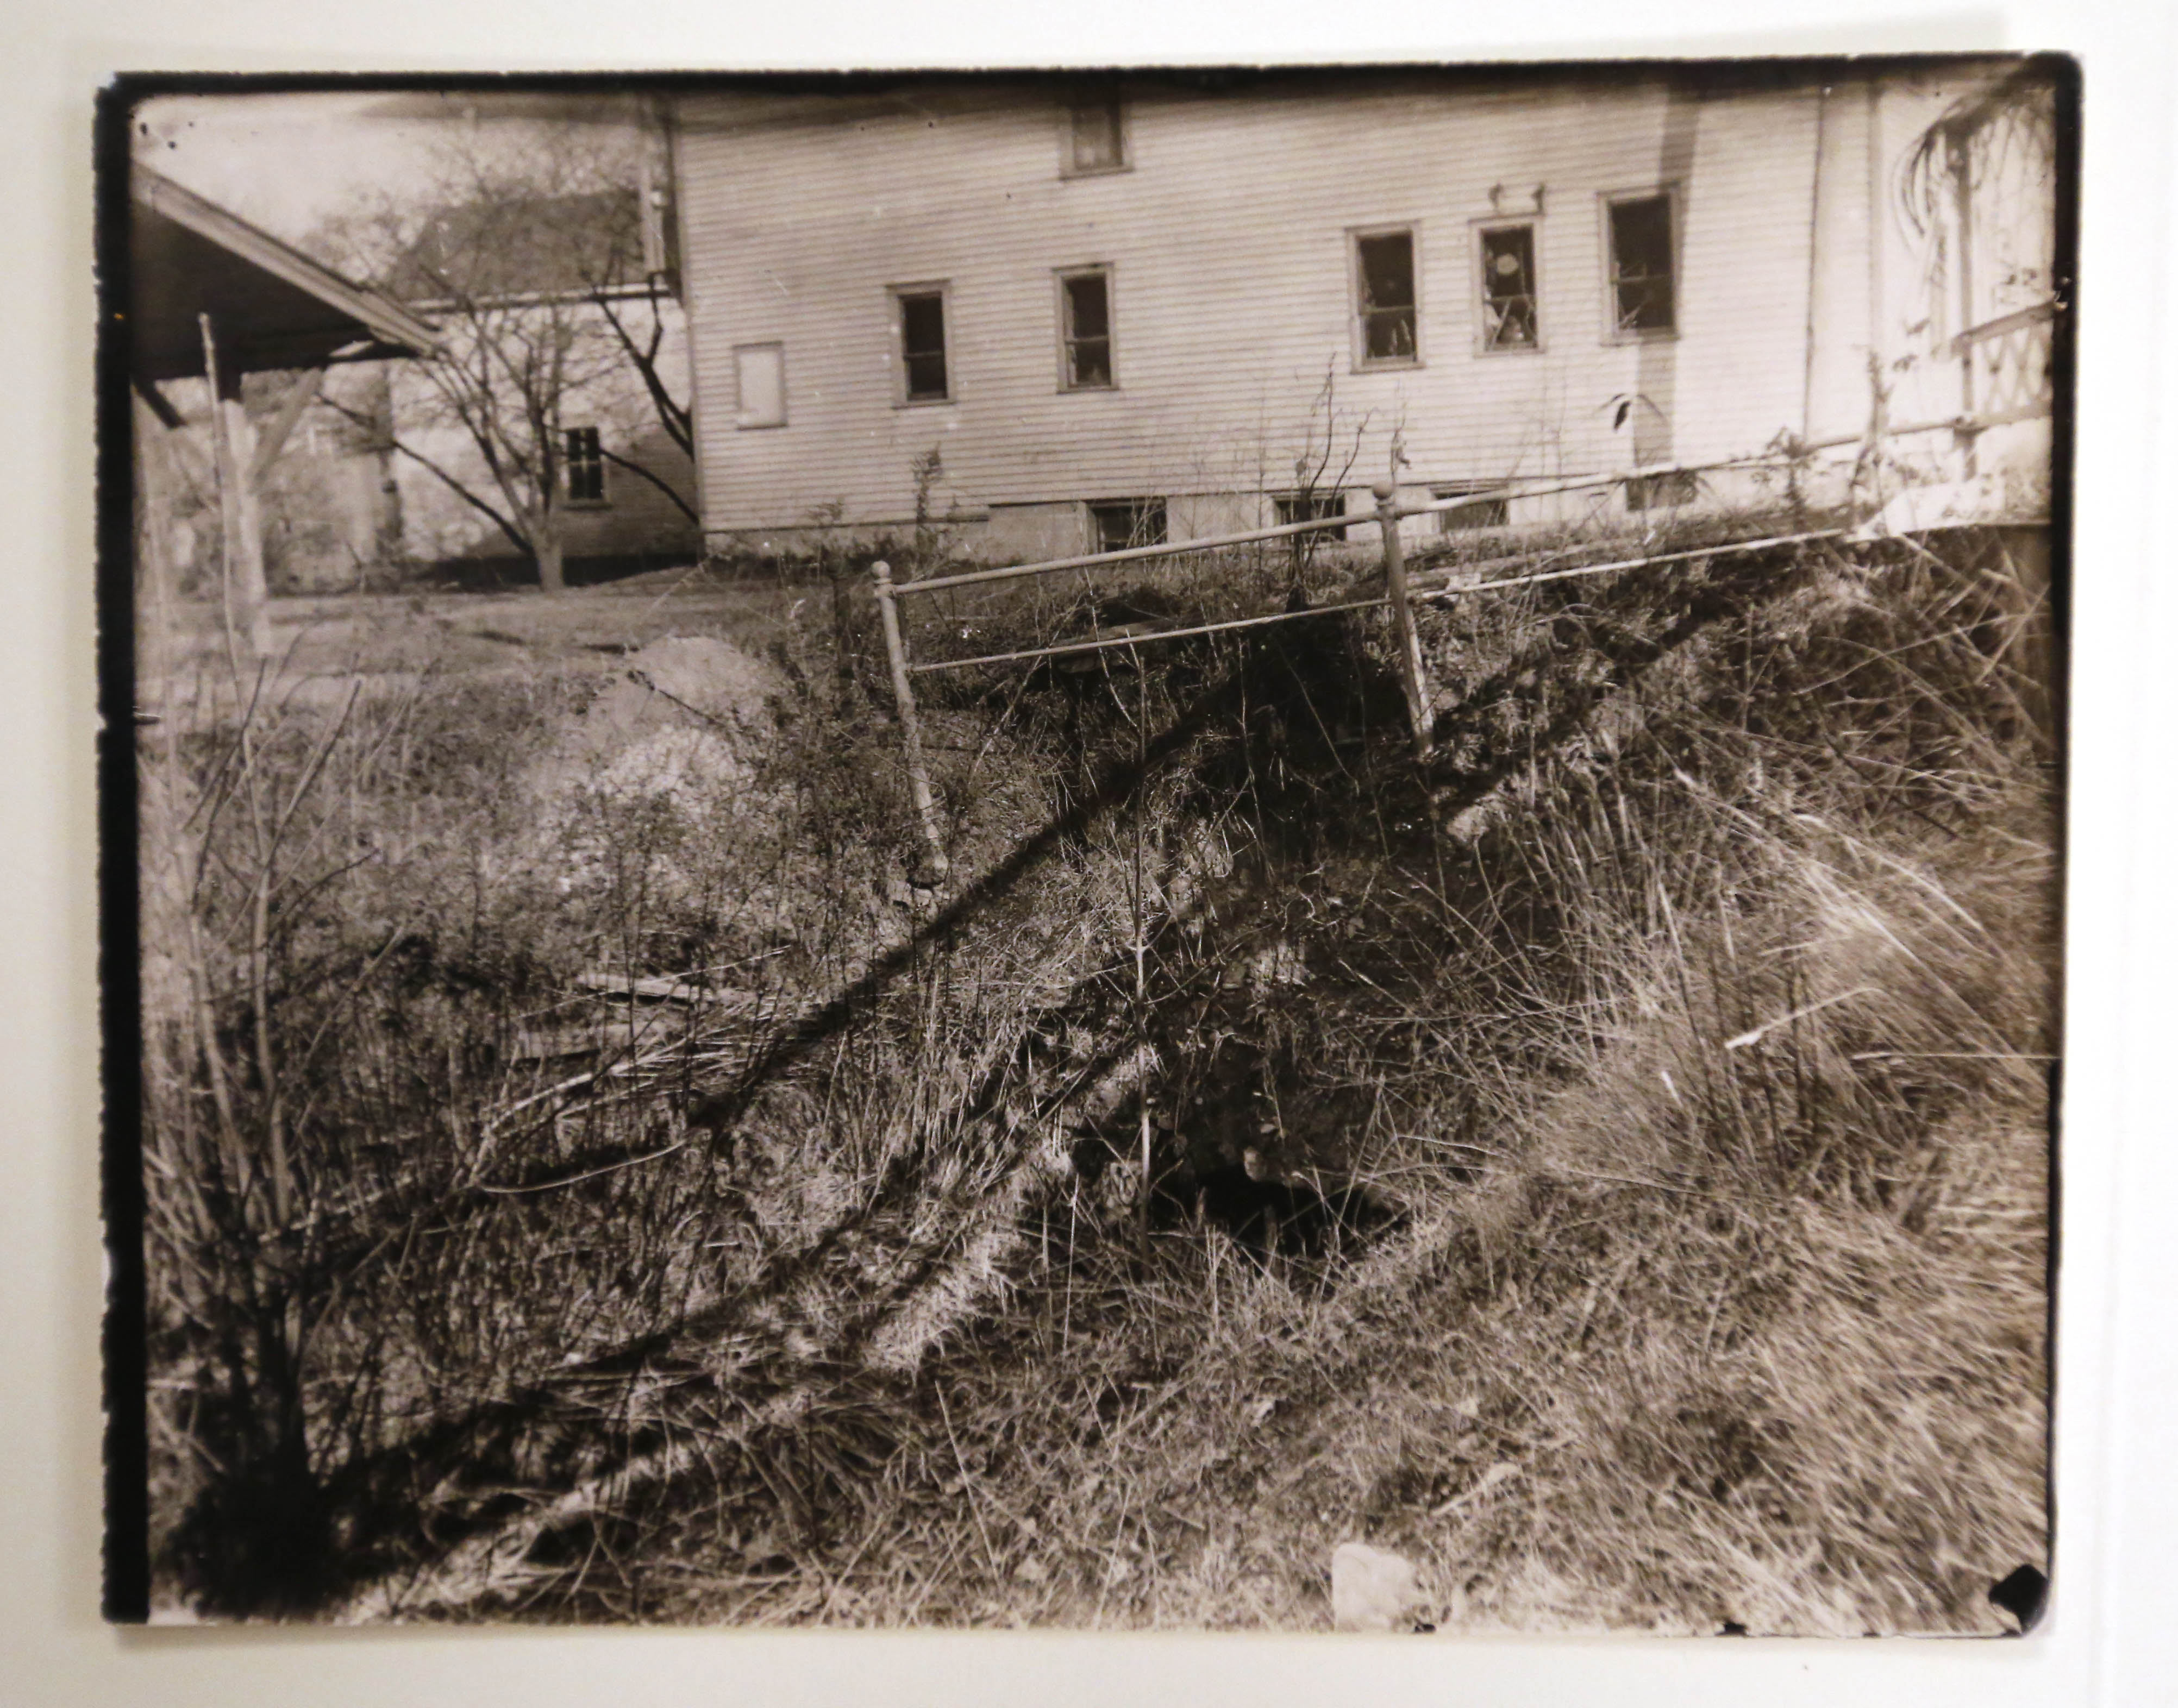 Historic photo of the site of the first commercial gas well in the United States, located on West  Main Street in Fredonia, N.Y.  (Courtesy of the Barker Historical Museum)